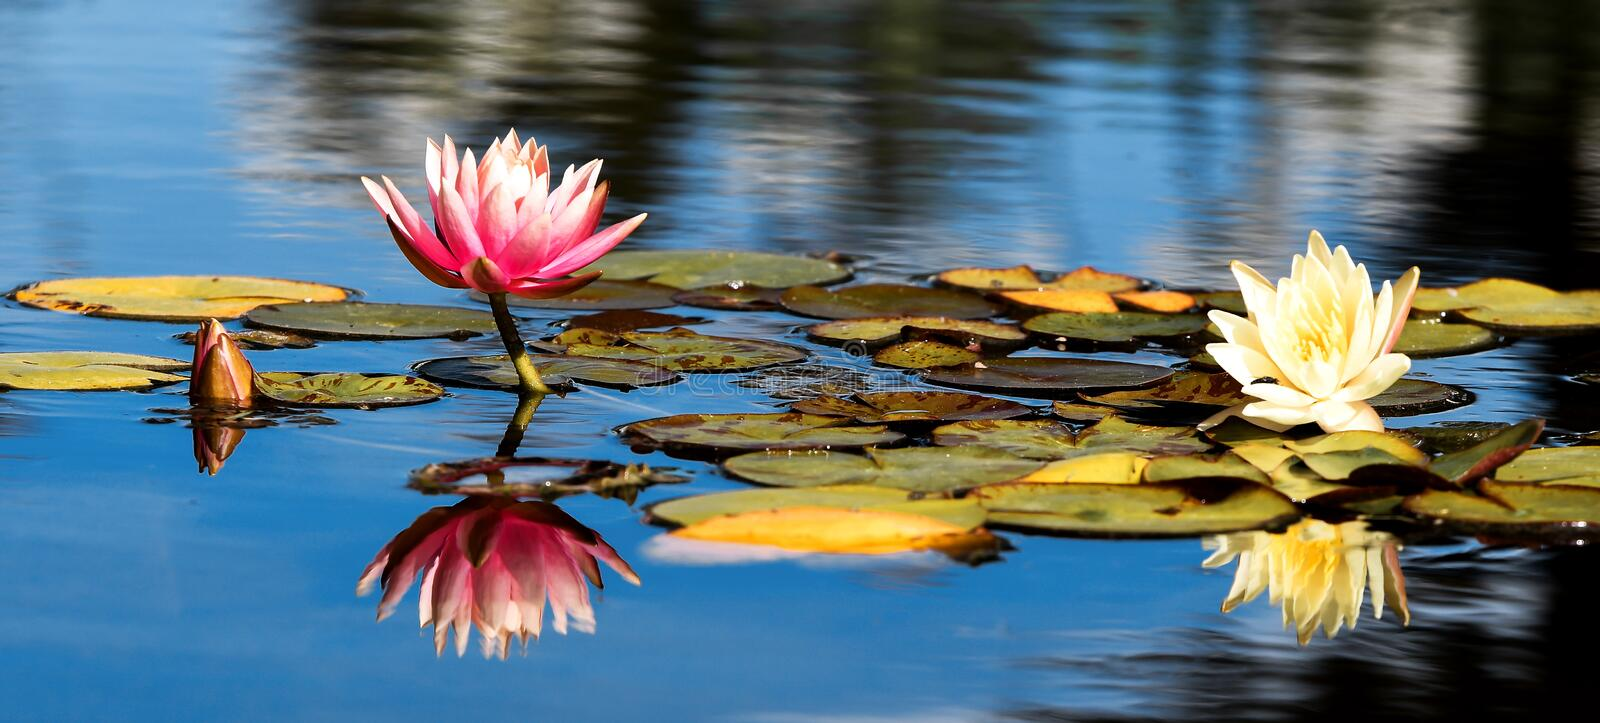 Pink and yellow Lotus with leafs water lily, water plant with reflection in a pond against blue ski. With trees stock photos